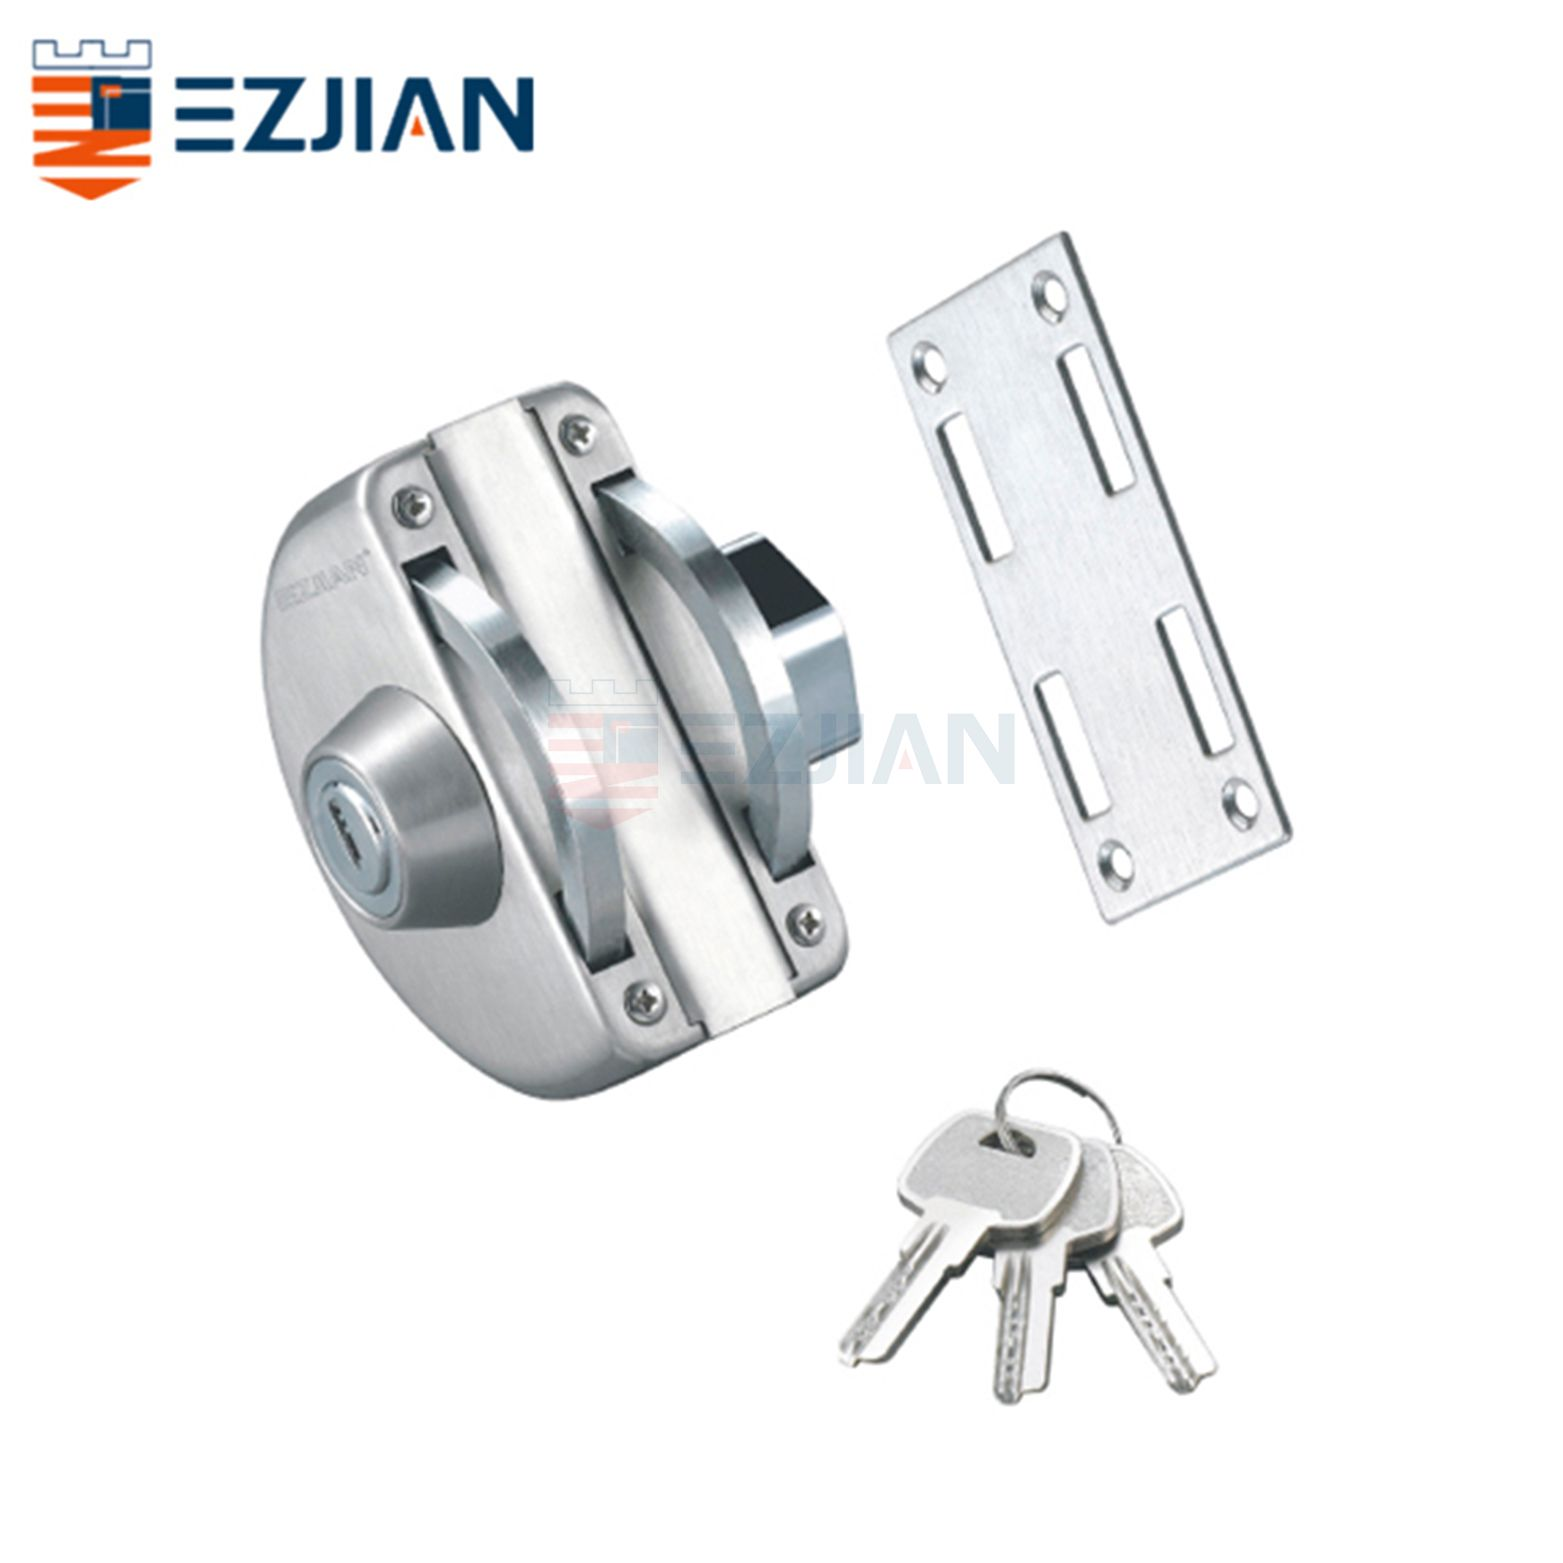 Glass Gate Lock EJ-9011